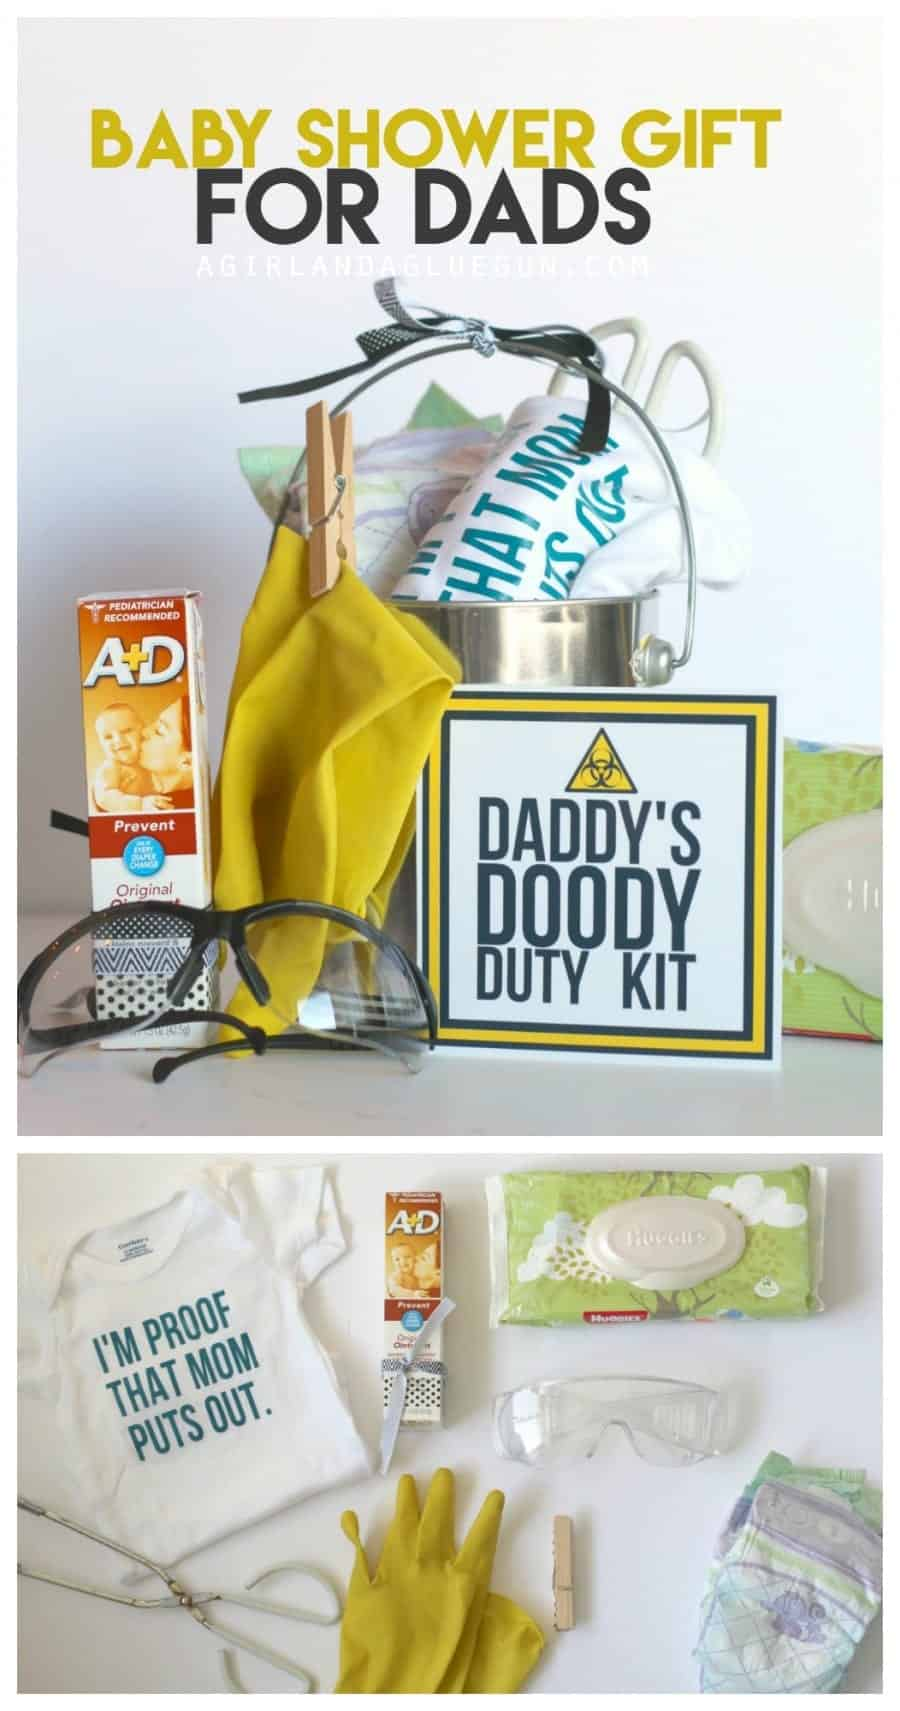 Funny Baby Shower Gift Daddy Doody Duty Kit A Girl And